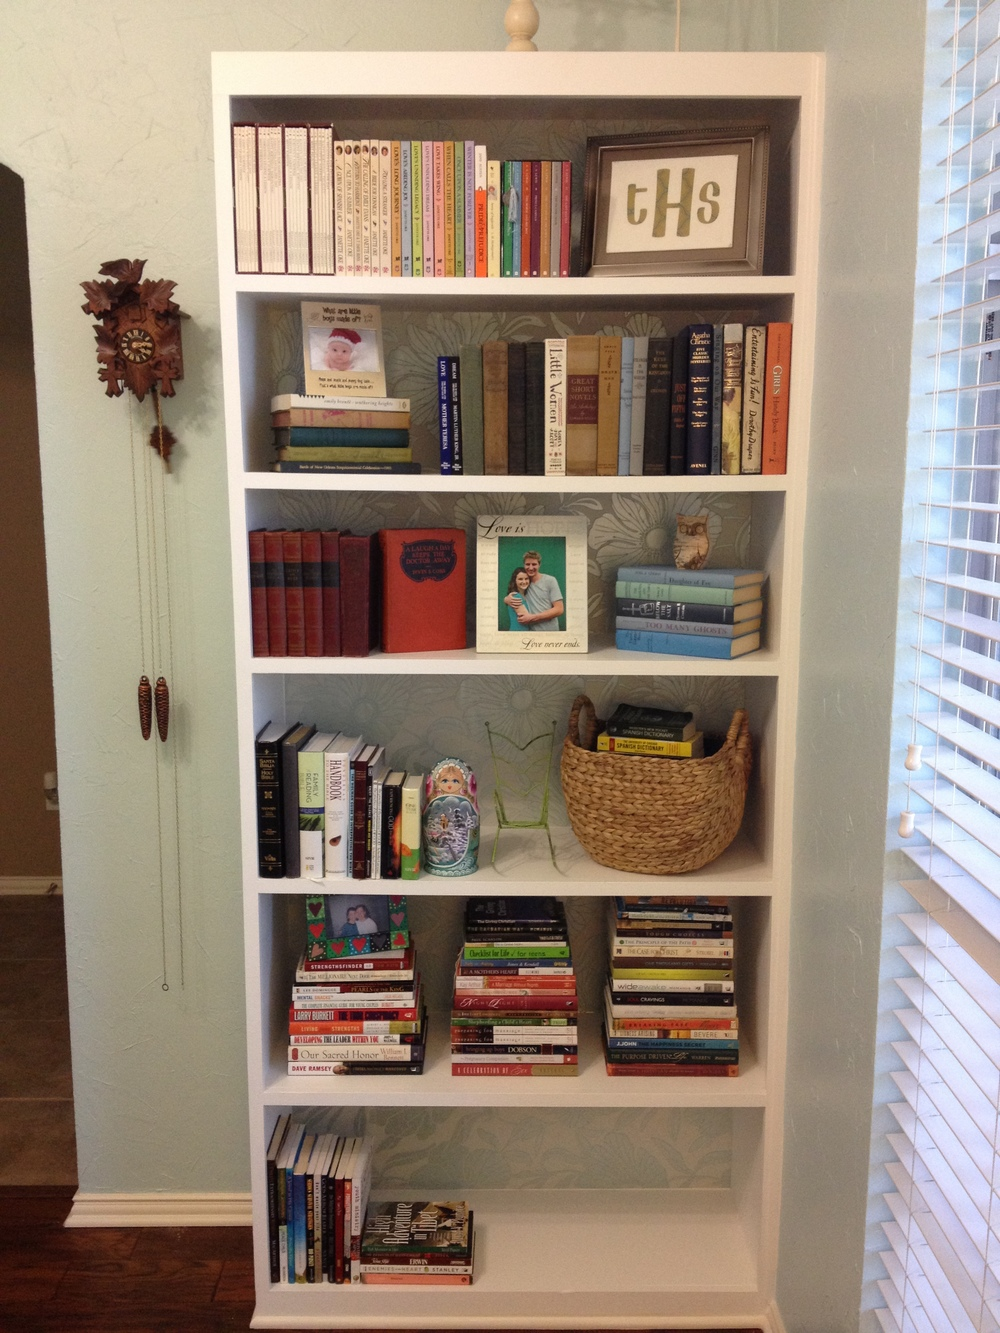 Semi-completed bookcase arrangement.